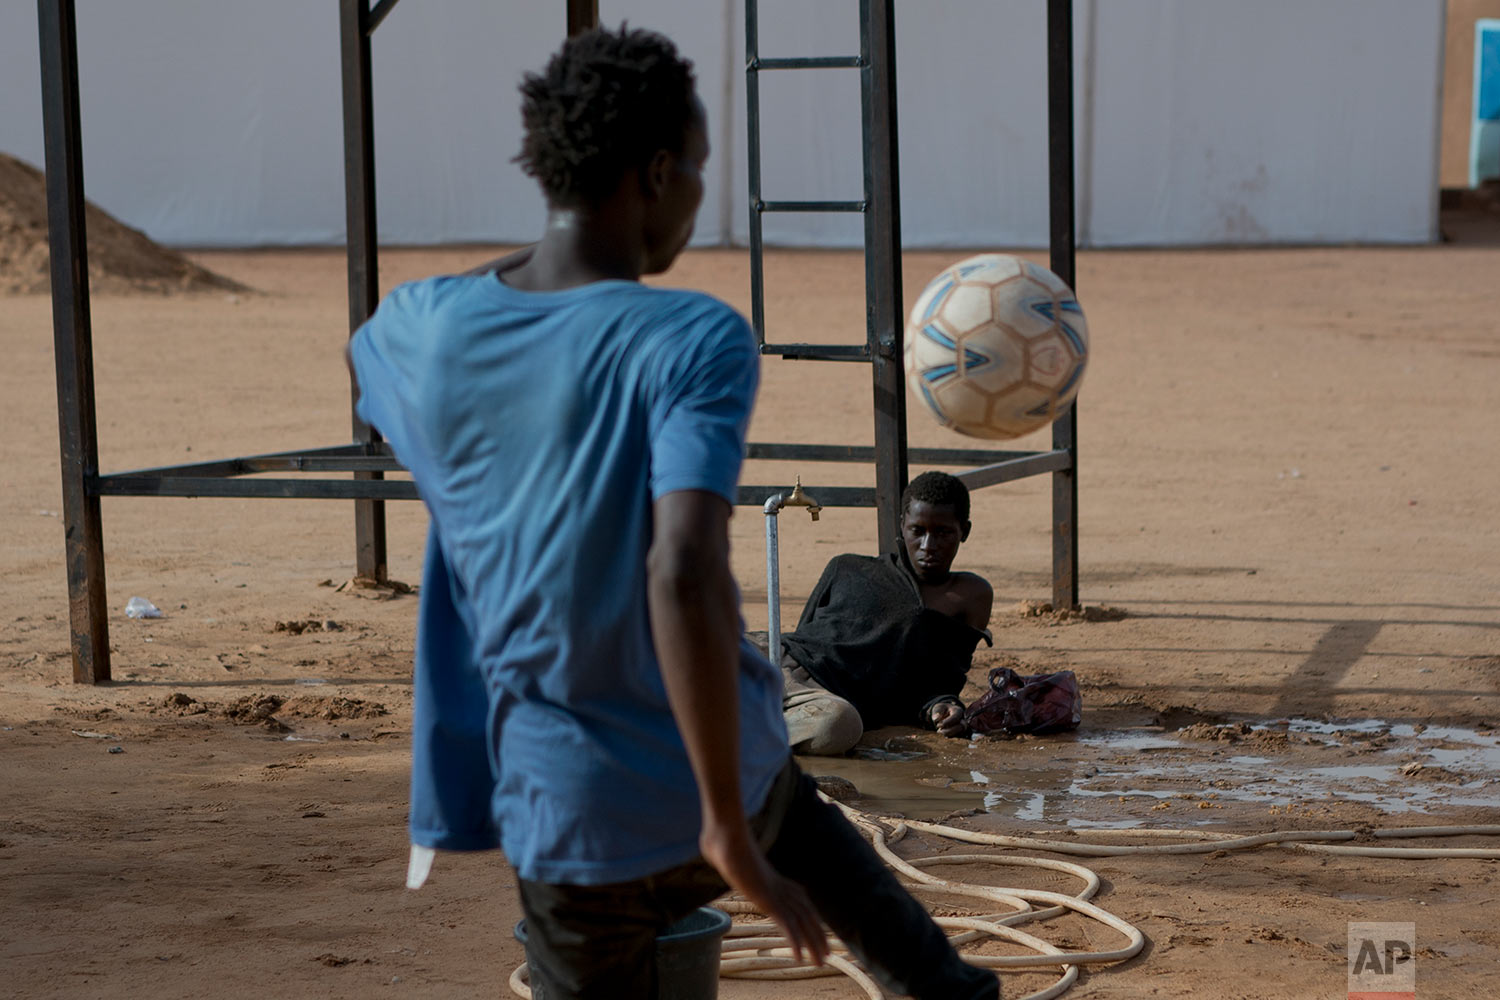 A young migrant who has been expelled from Algeria watches others play football in a transit center in Arlit, Niger, on June 1, 2018 (AP Photo/Jerome Delay)